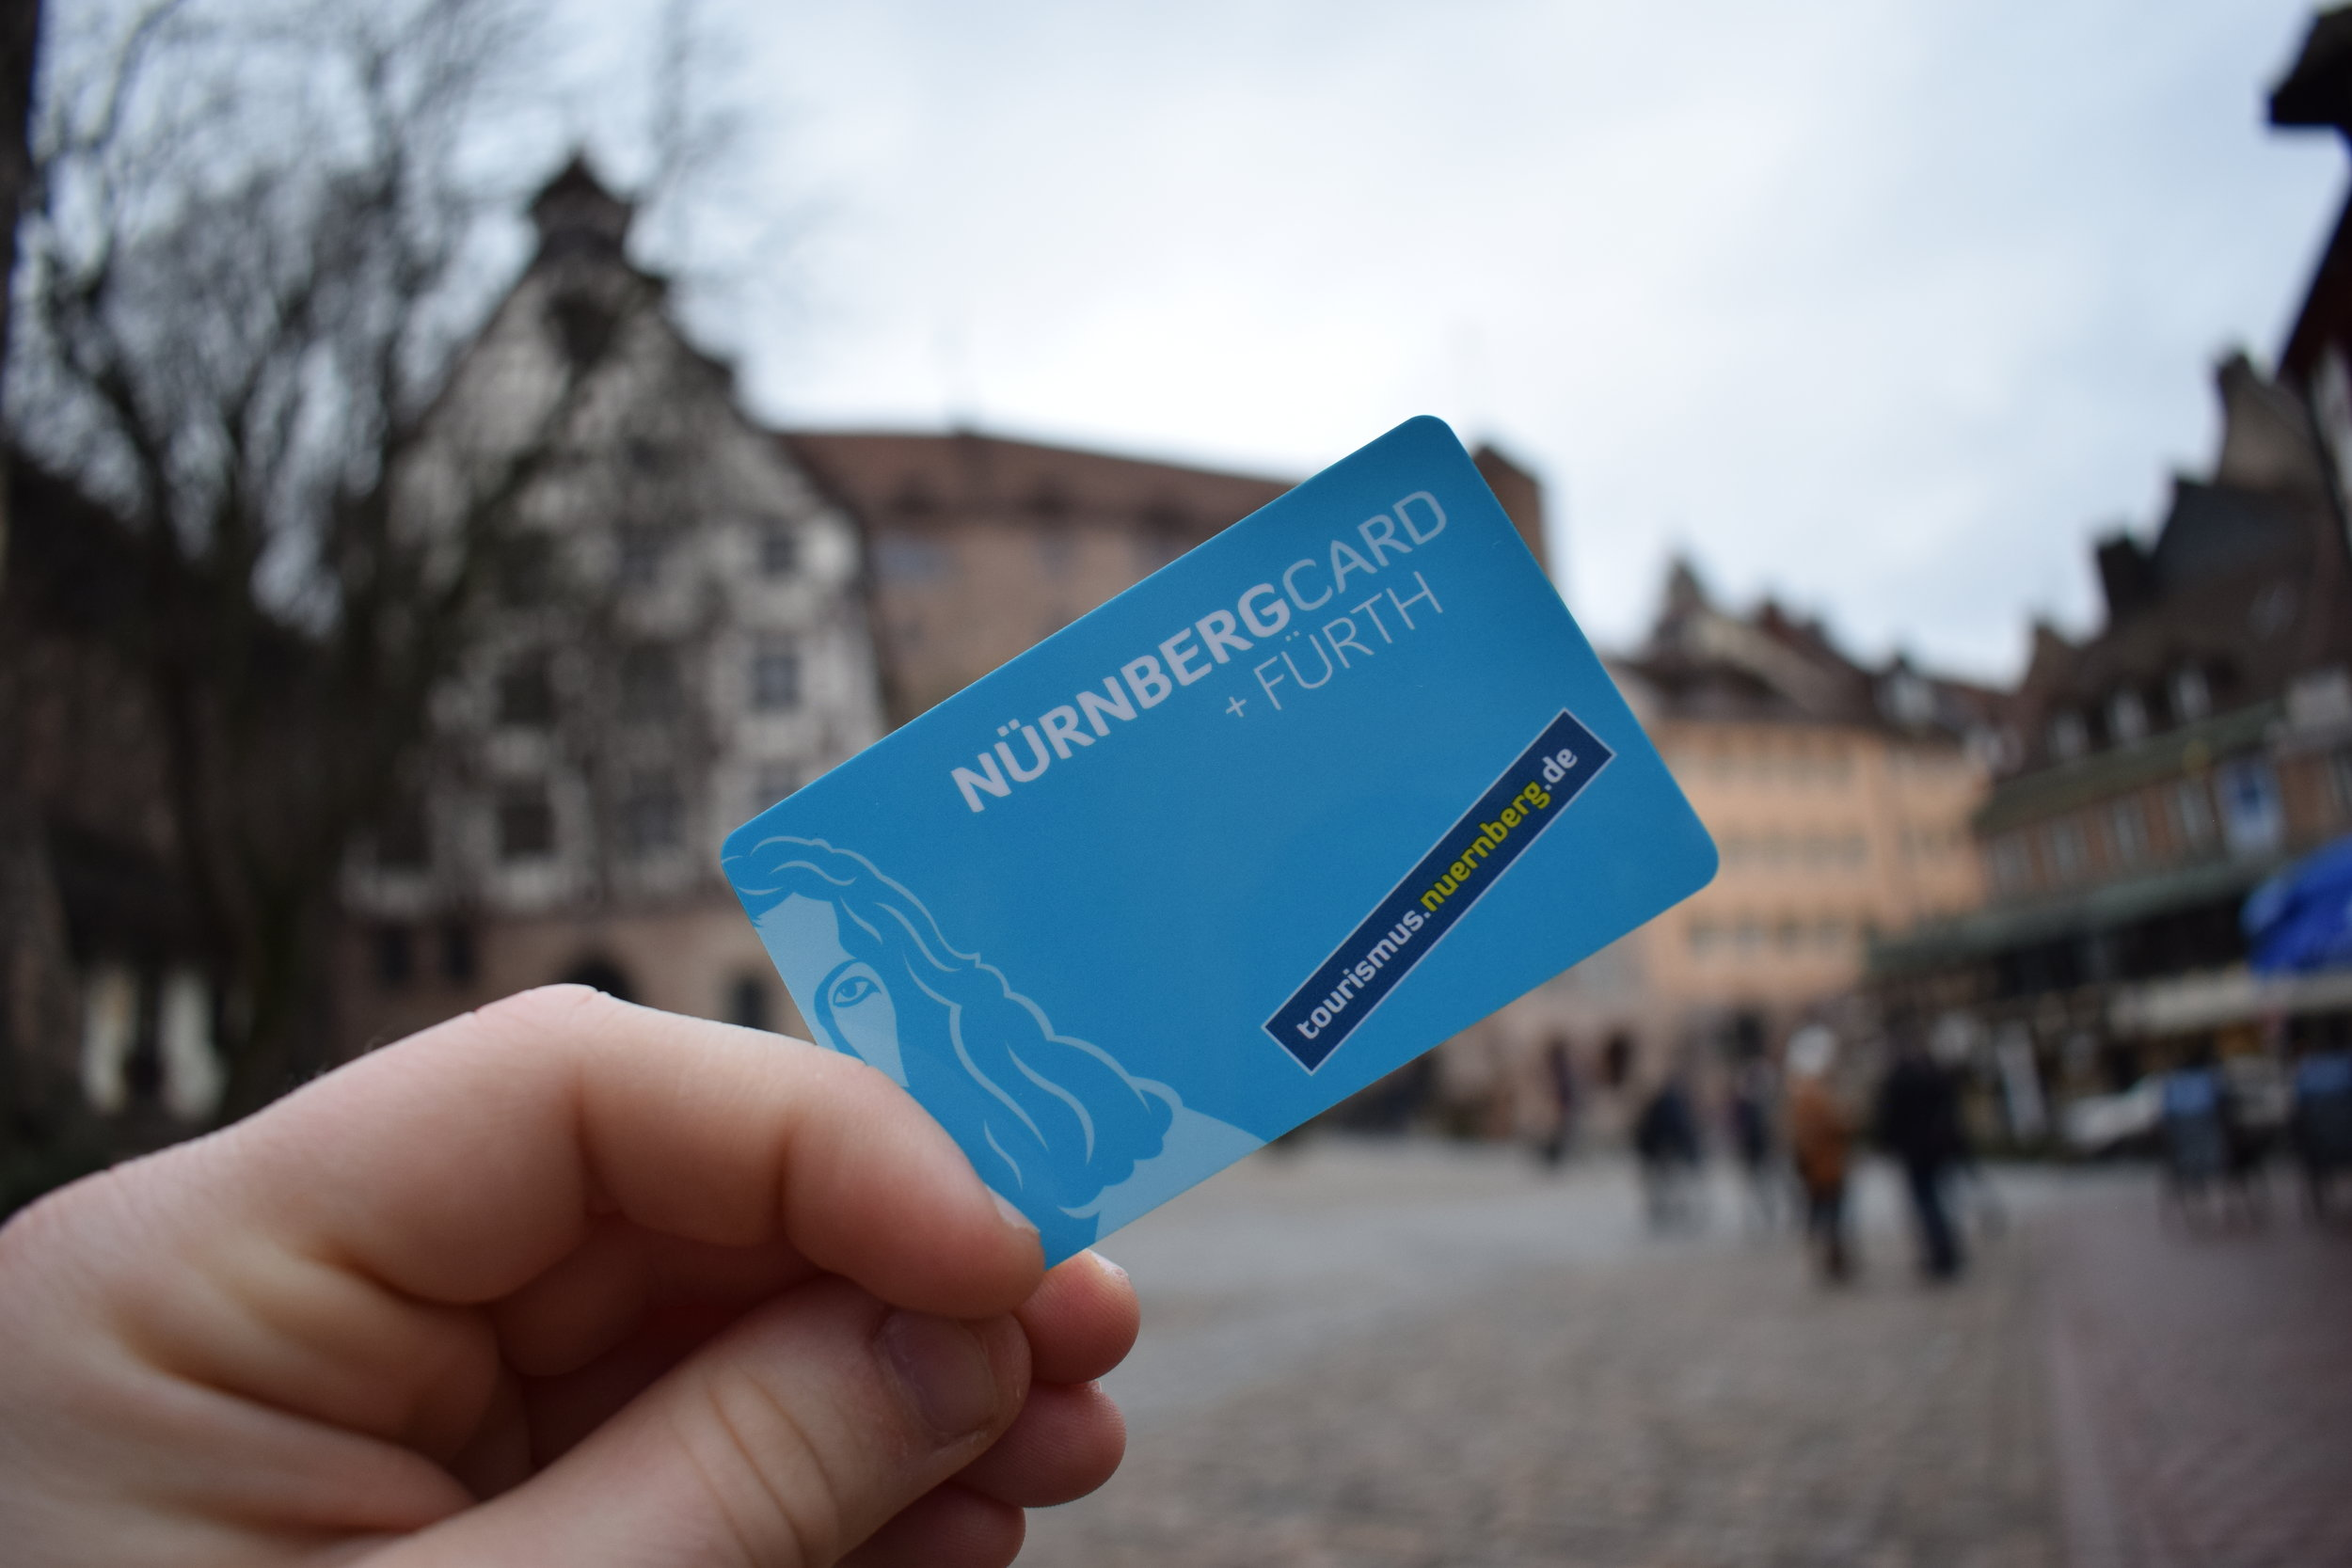 Nurnberg-Card-Old-Town